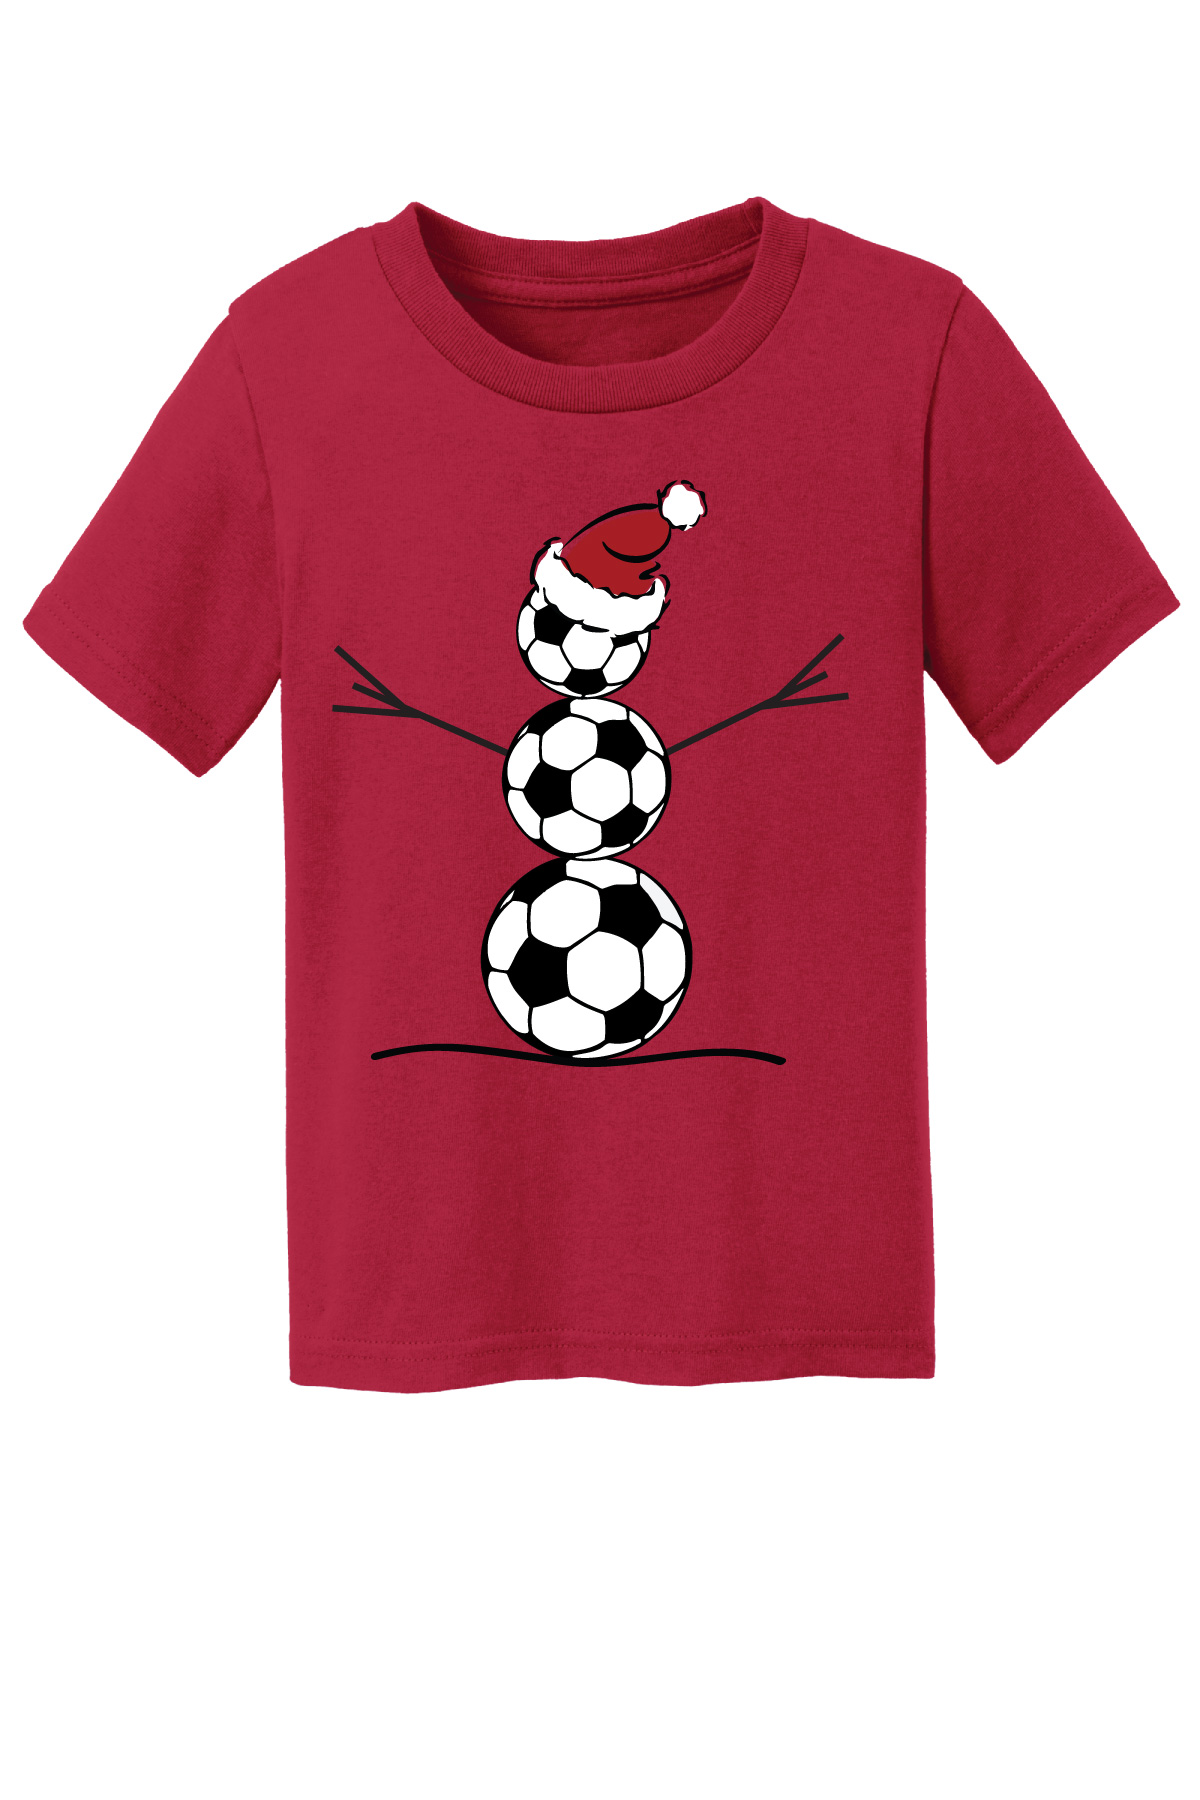 Toddler Snowman Tshirt for soccer by Code Four Athletics